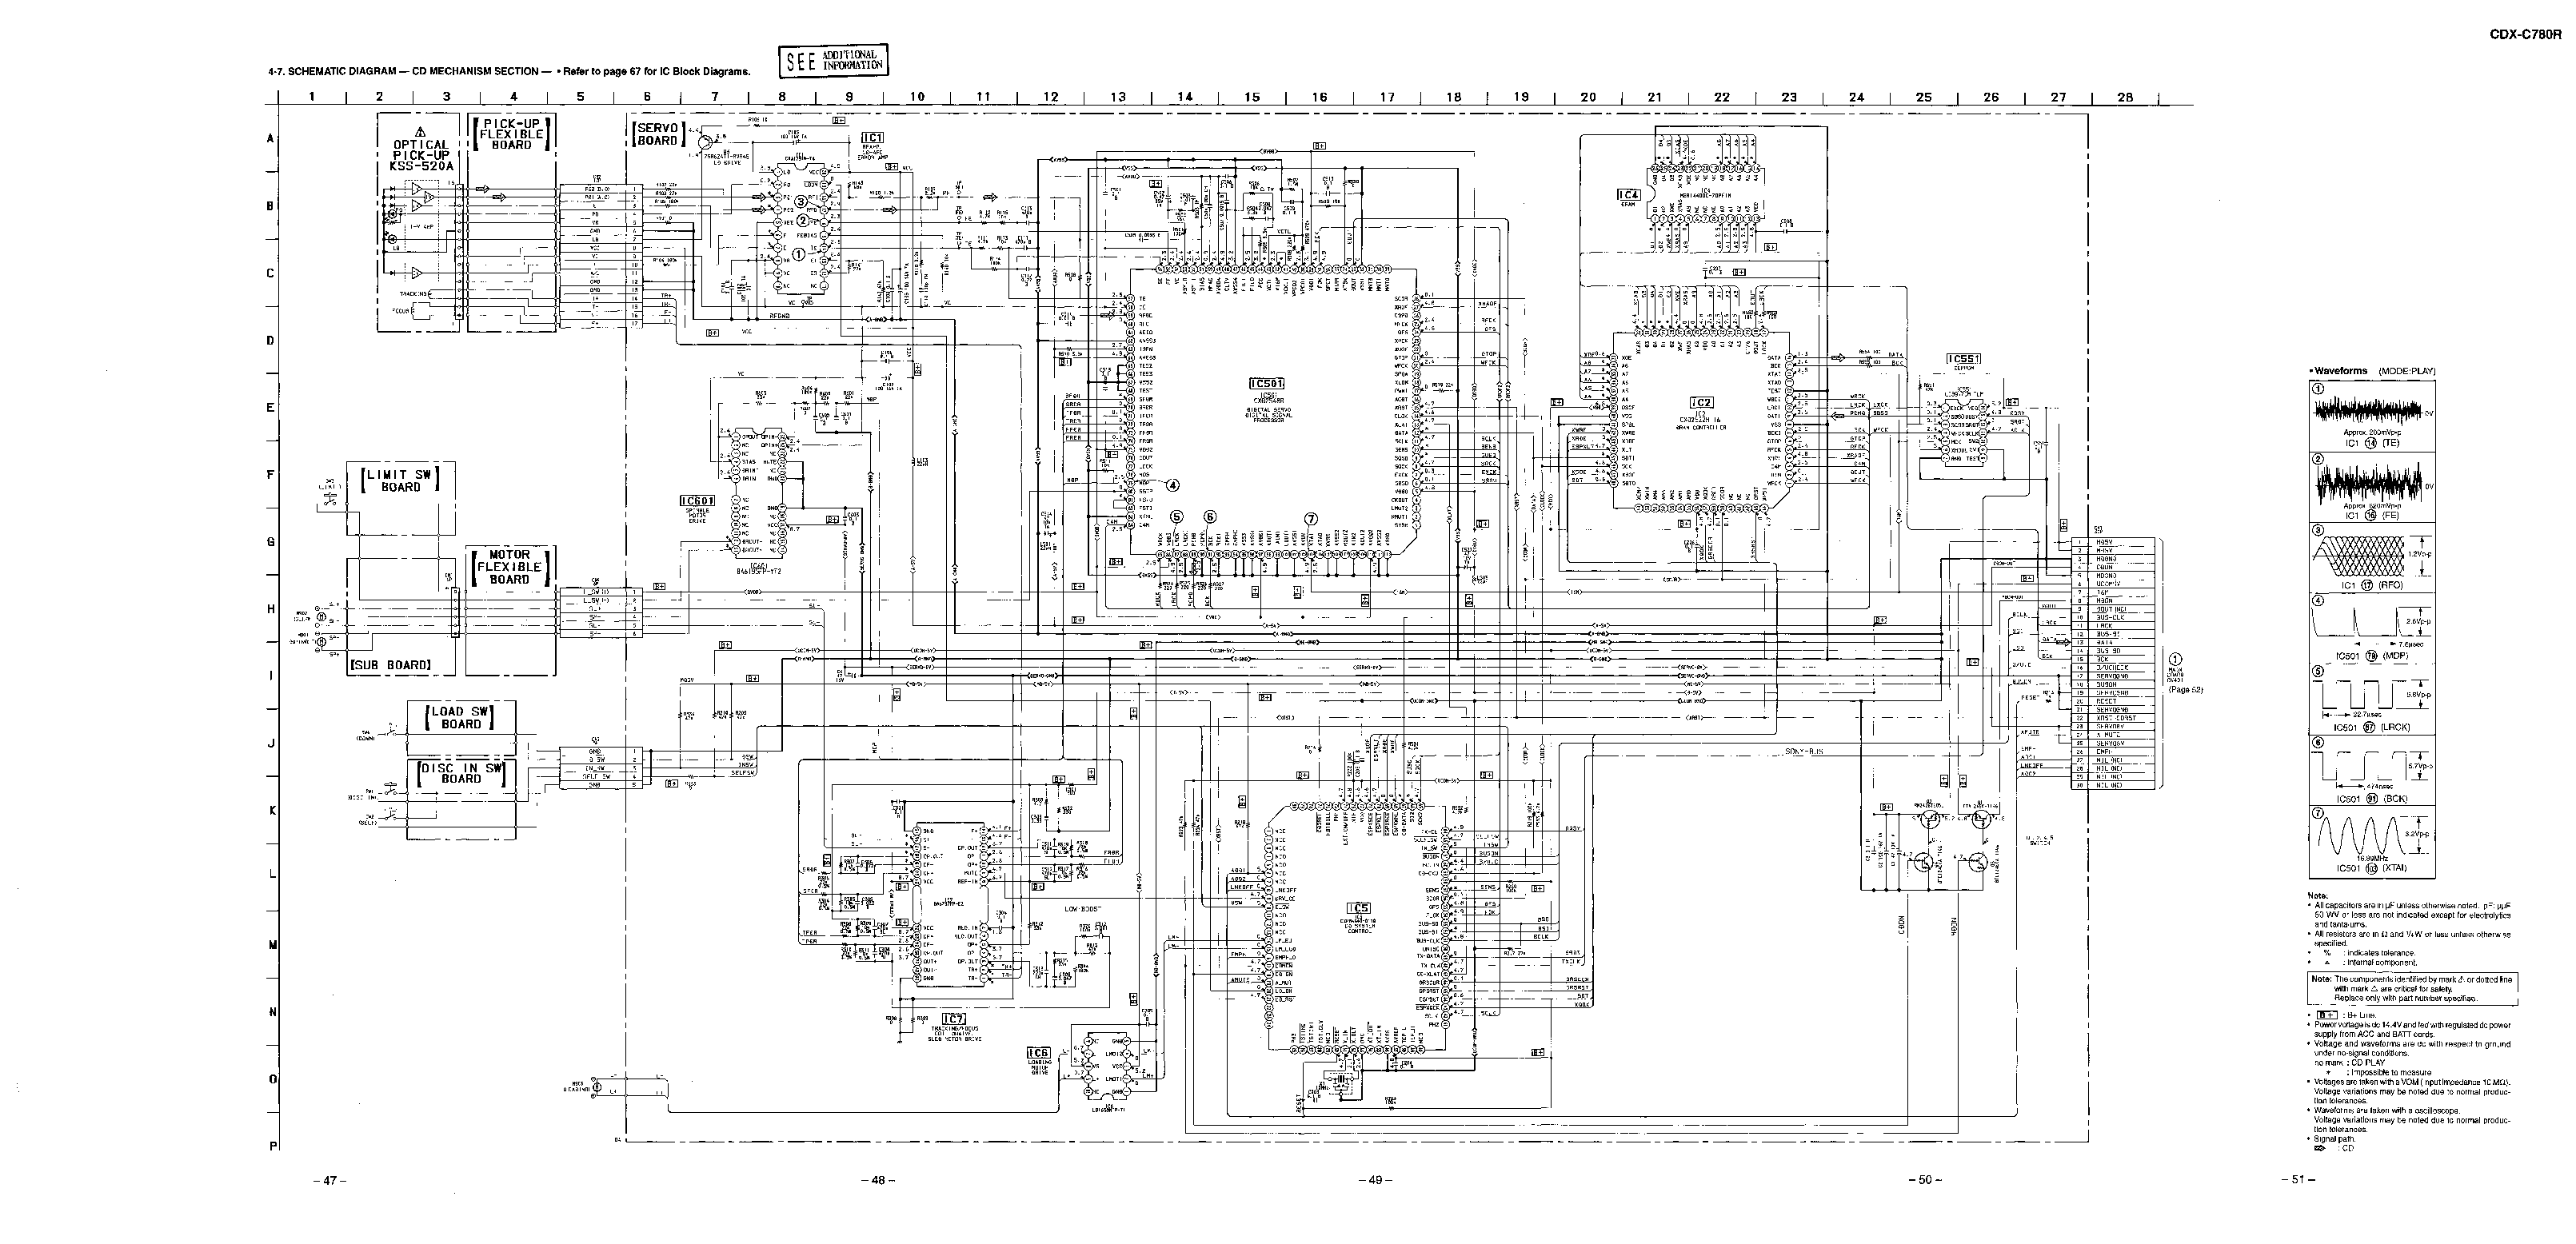 sony model cdx m610 wiring diagram schematics and wiring diagrams sony cdx m8805x fm am pact disc player manual